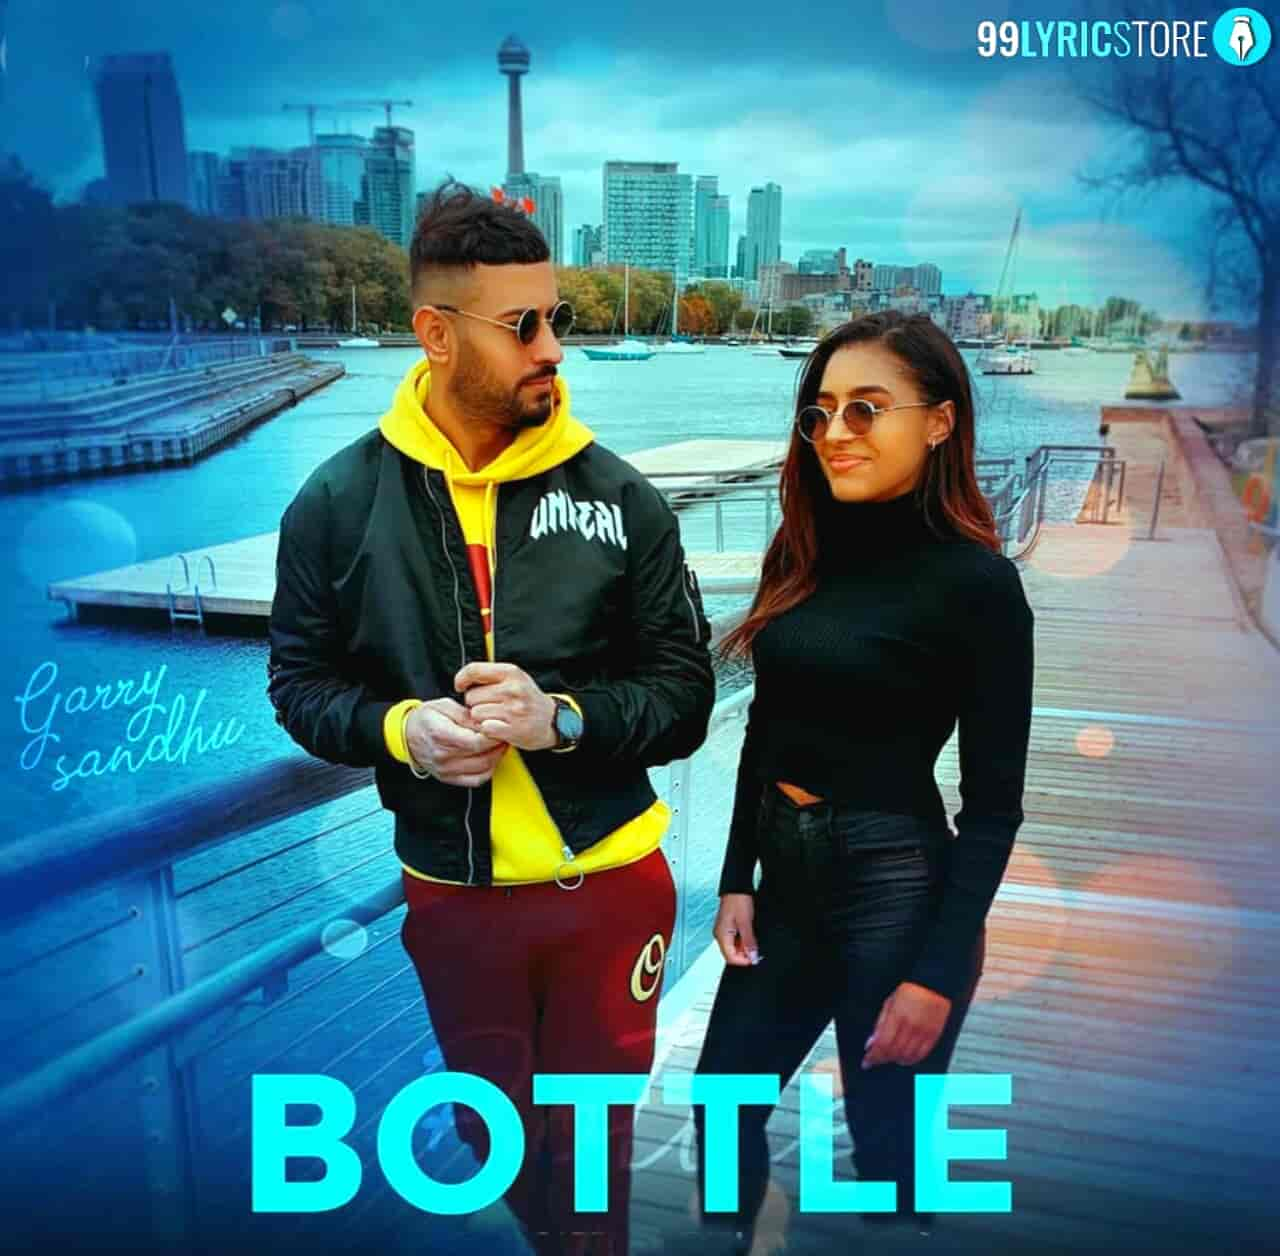 Bottle Garry Sandhu song Images